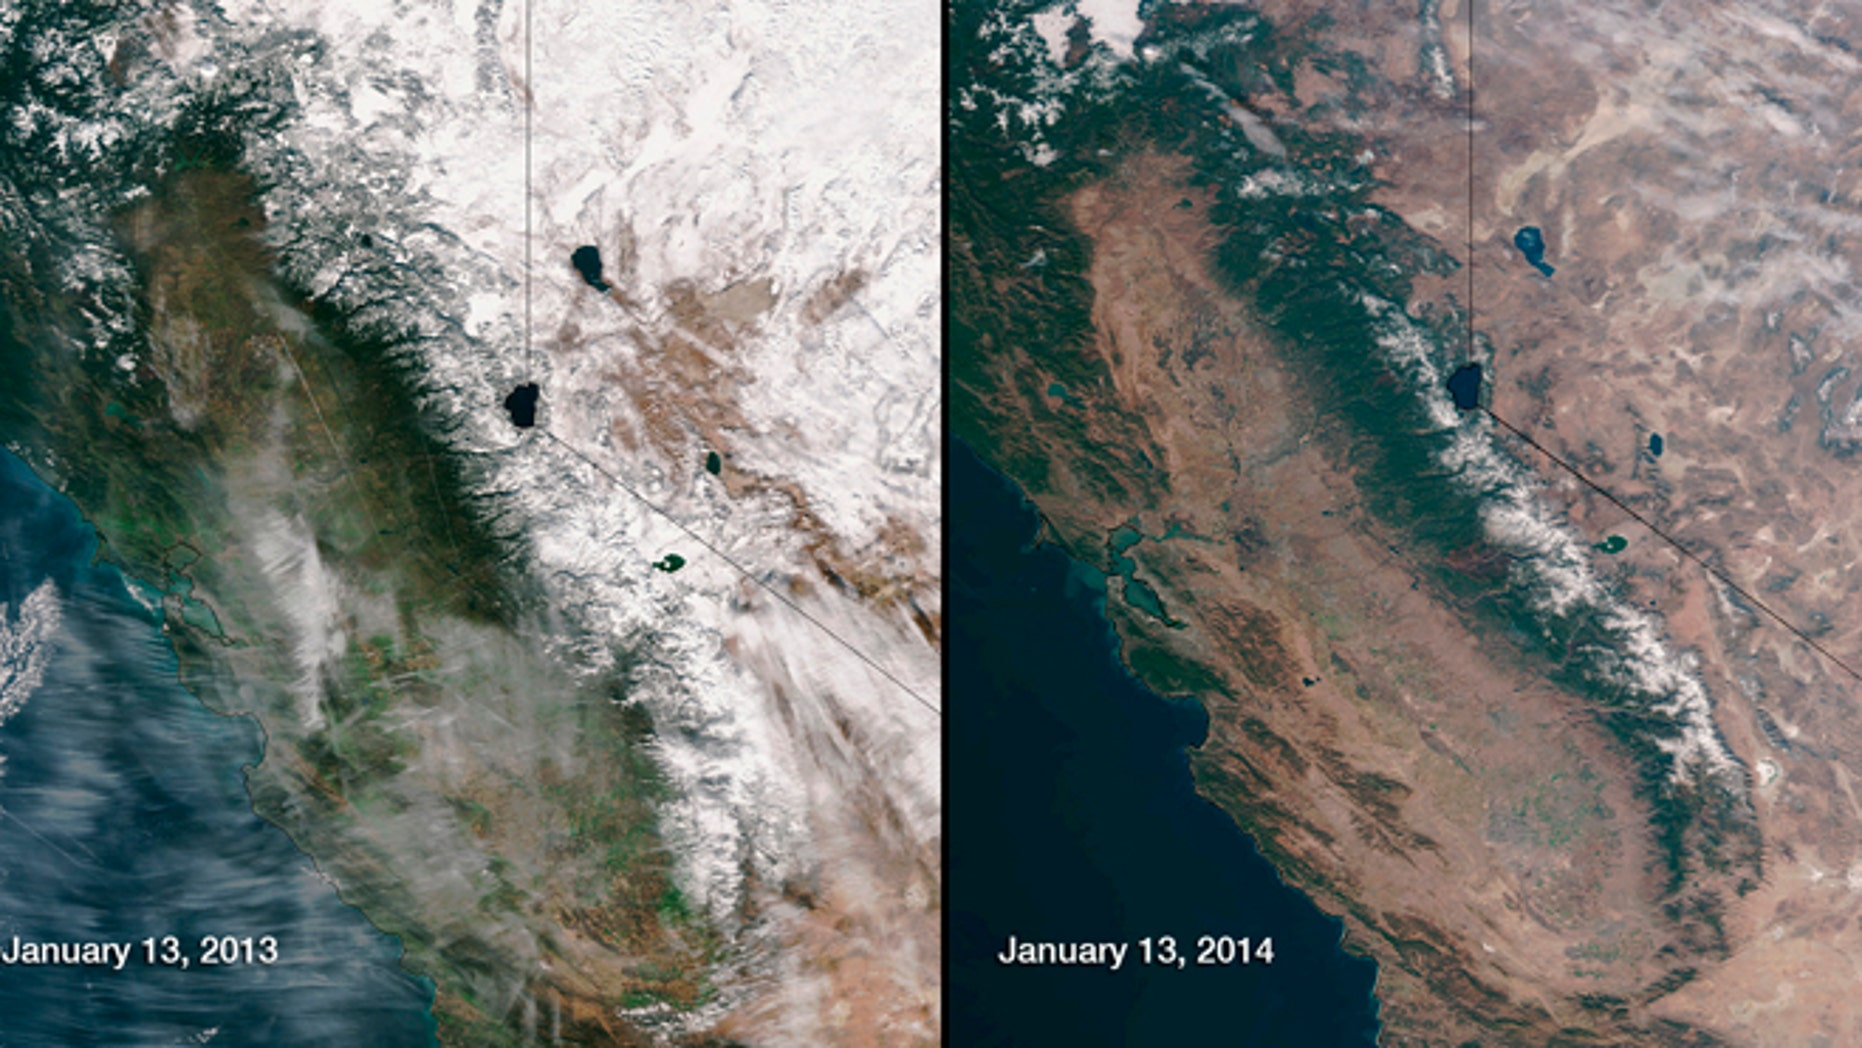 Snow cover in the Sierra Nevada mountain range in California in January 2013 and January 2014 is compared in this combination of NASA satellite handout photos. California Gov. Jerry Brown declared a drought emergency January 17, 2014, a move that will allow the parched state to seek federal aid as it grapples with what could turn out to be the driest year in recorded state history.